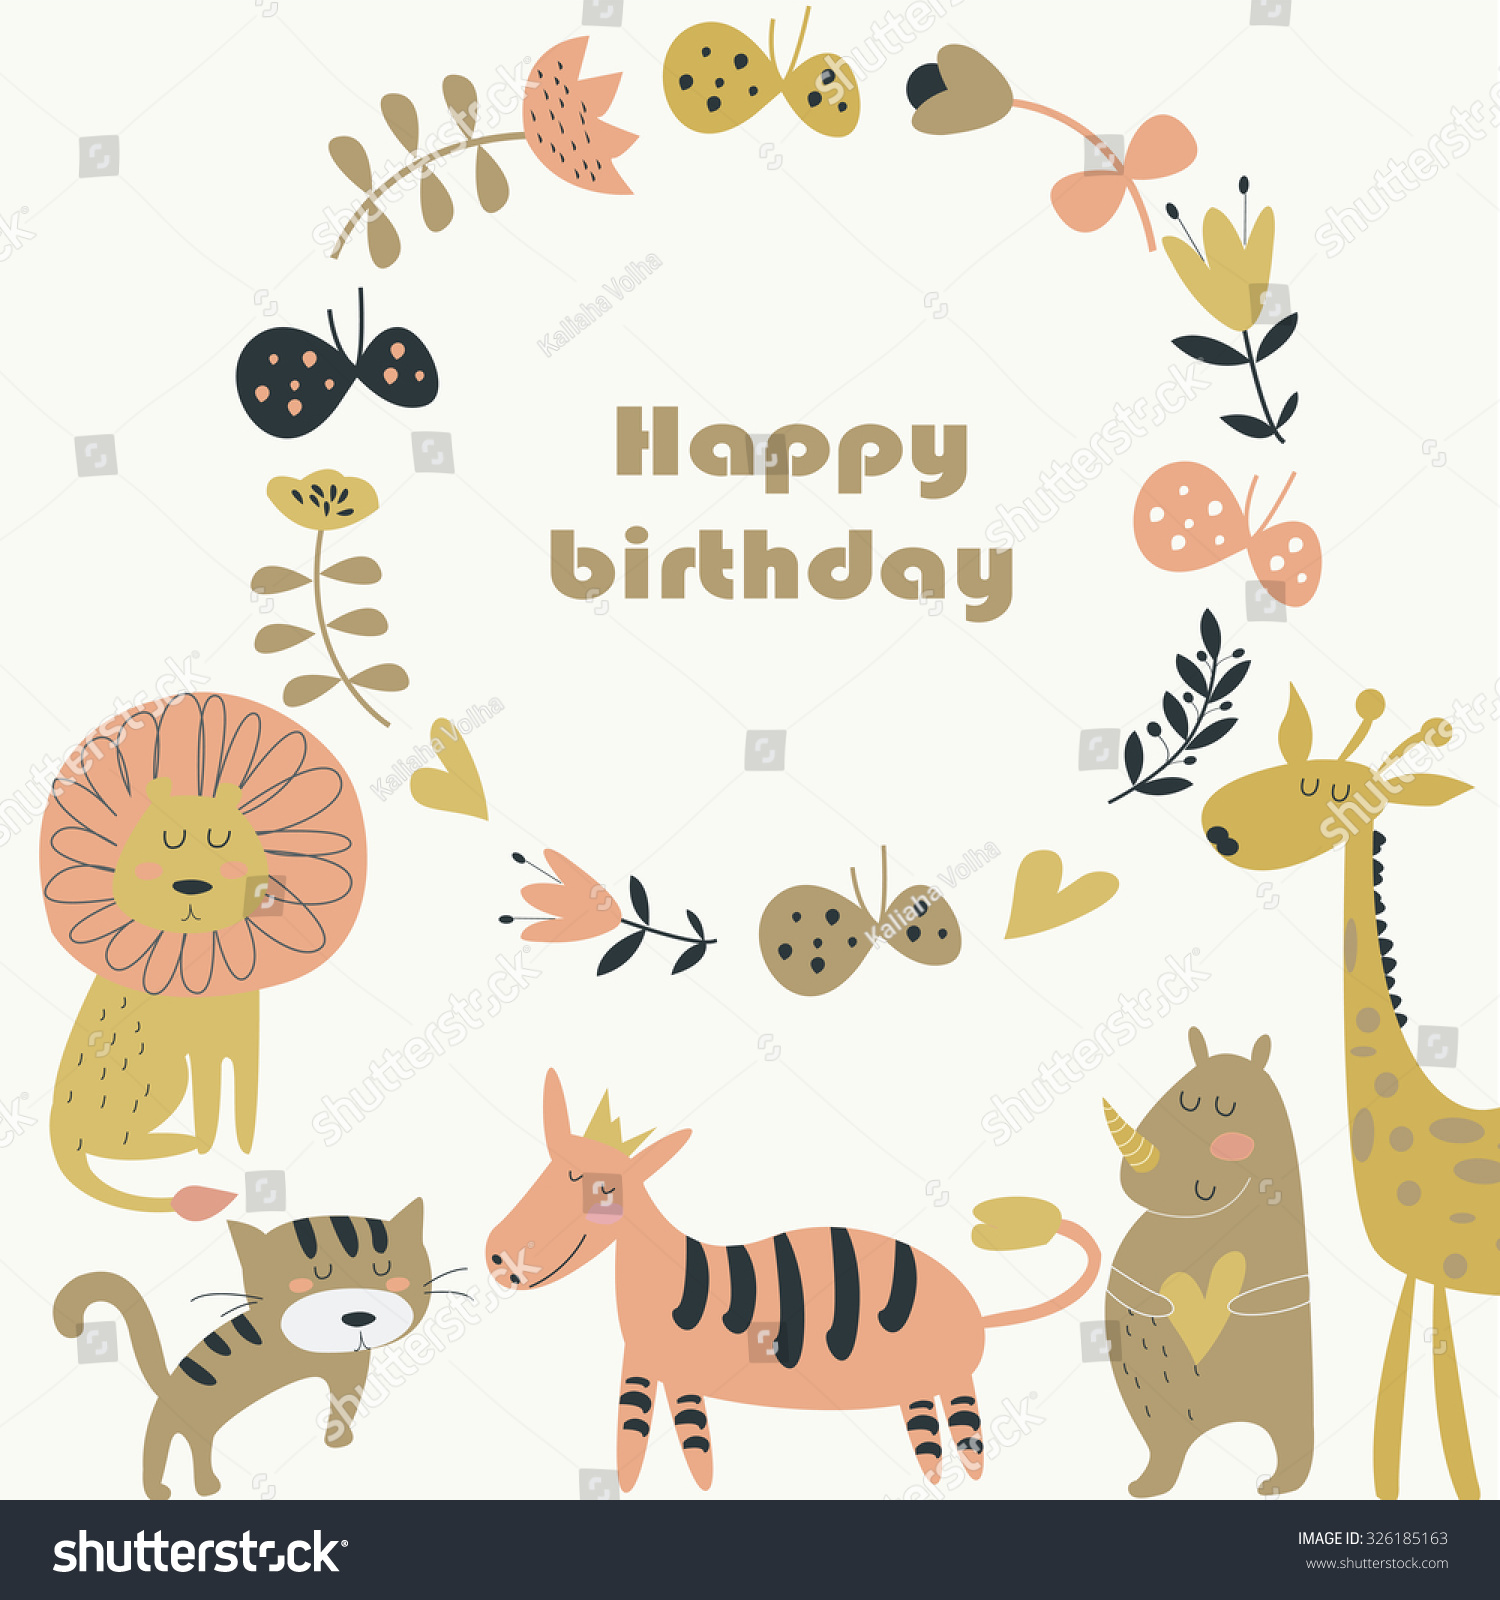 Birthday Invitation Cute Lion Tiger Zebra Stock Vector (Royalty Free ...